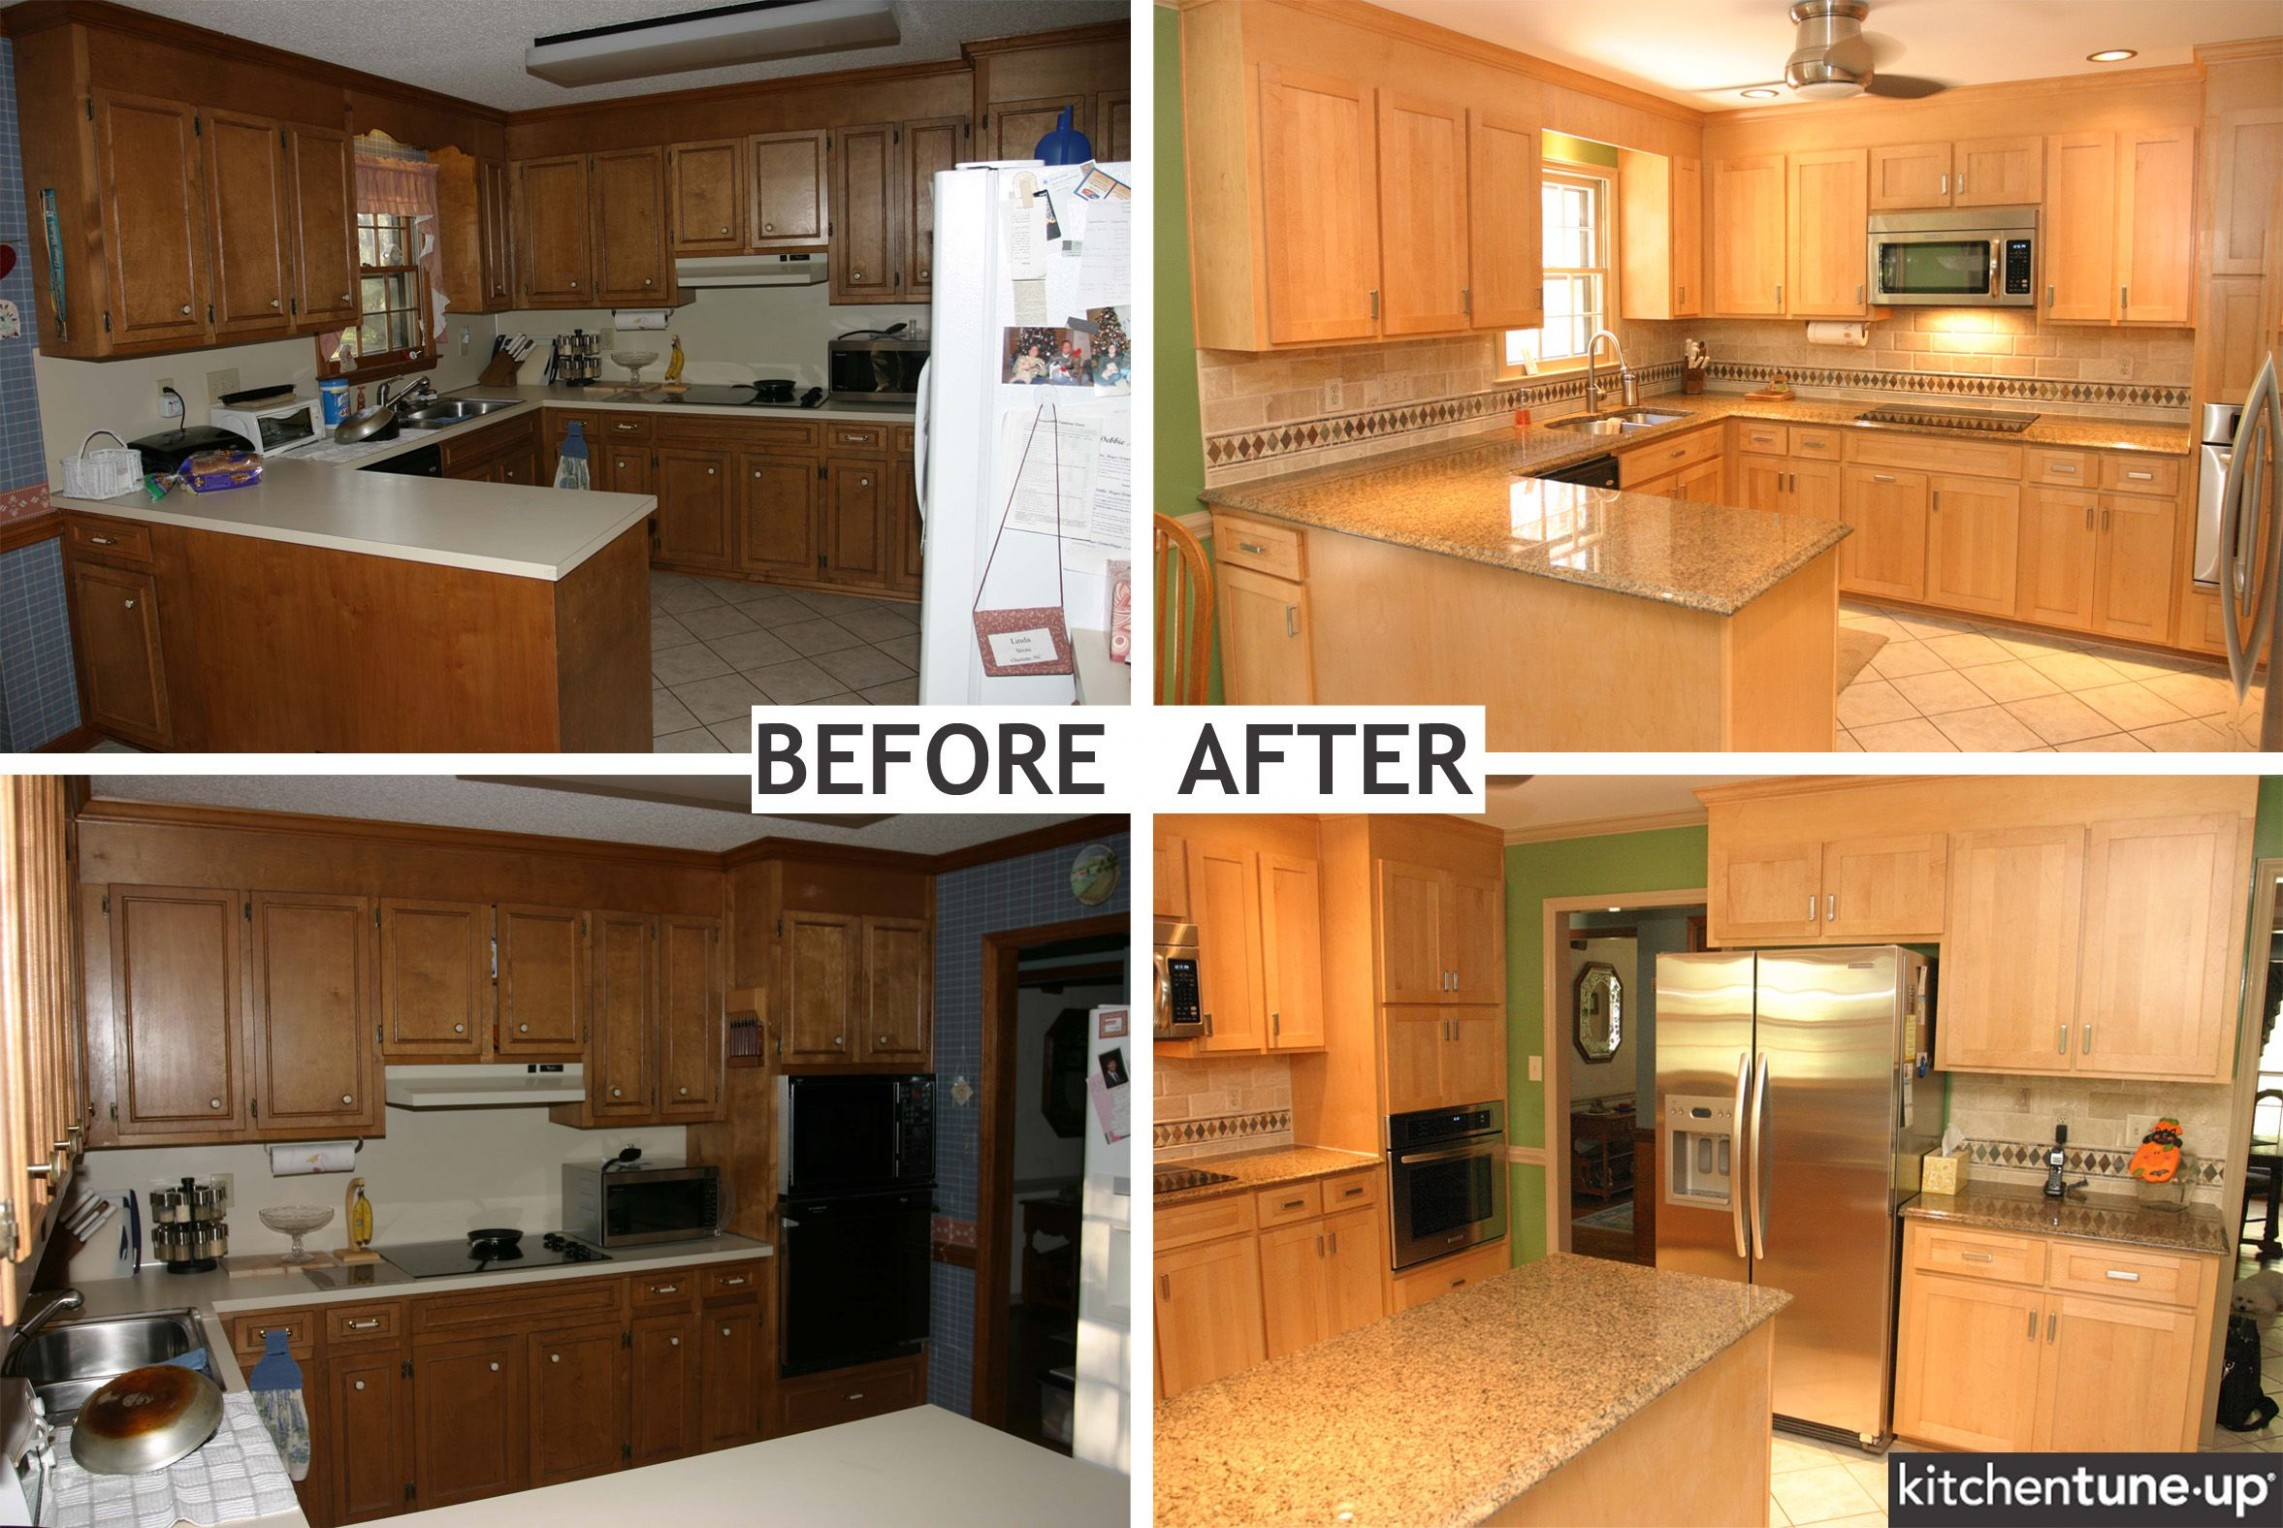 Average Cost To Reface Kitchen Cabinets Yourself Fireplace With  - How Much Does Refinishing Kitchen Cabinets Cost